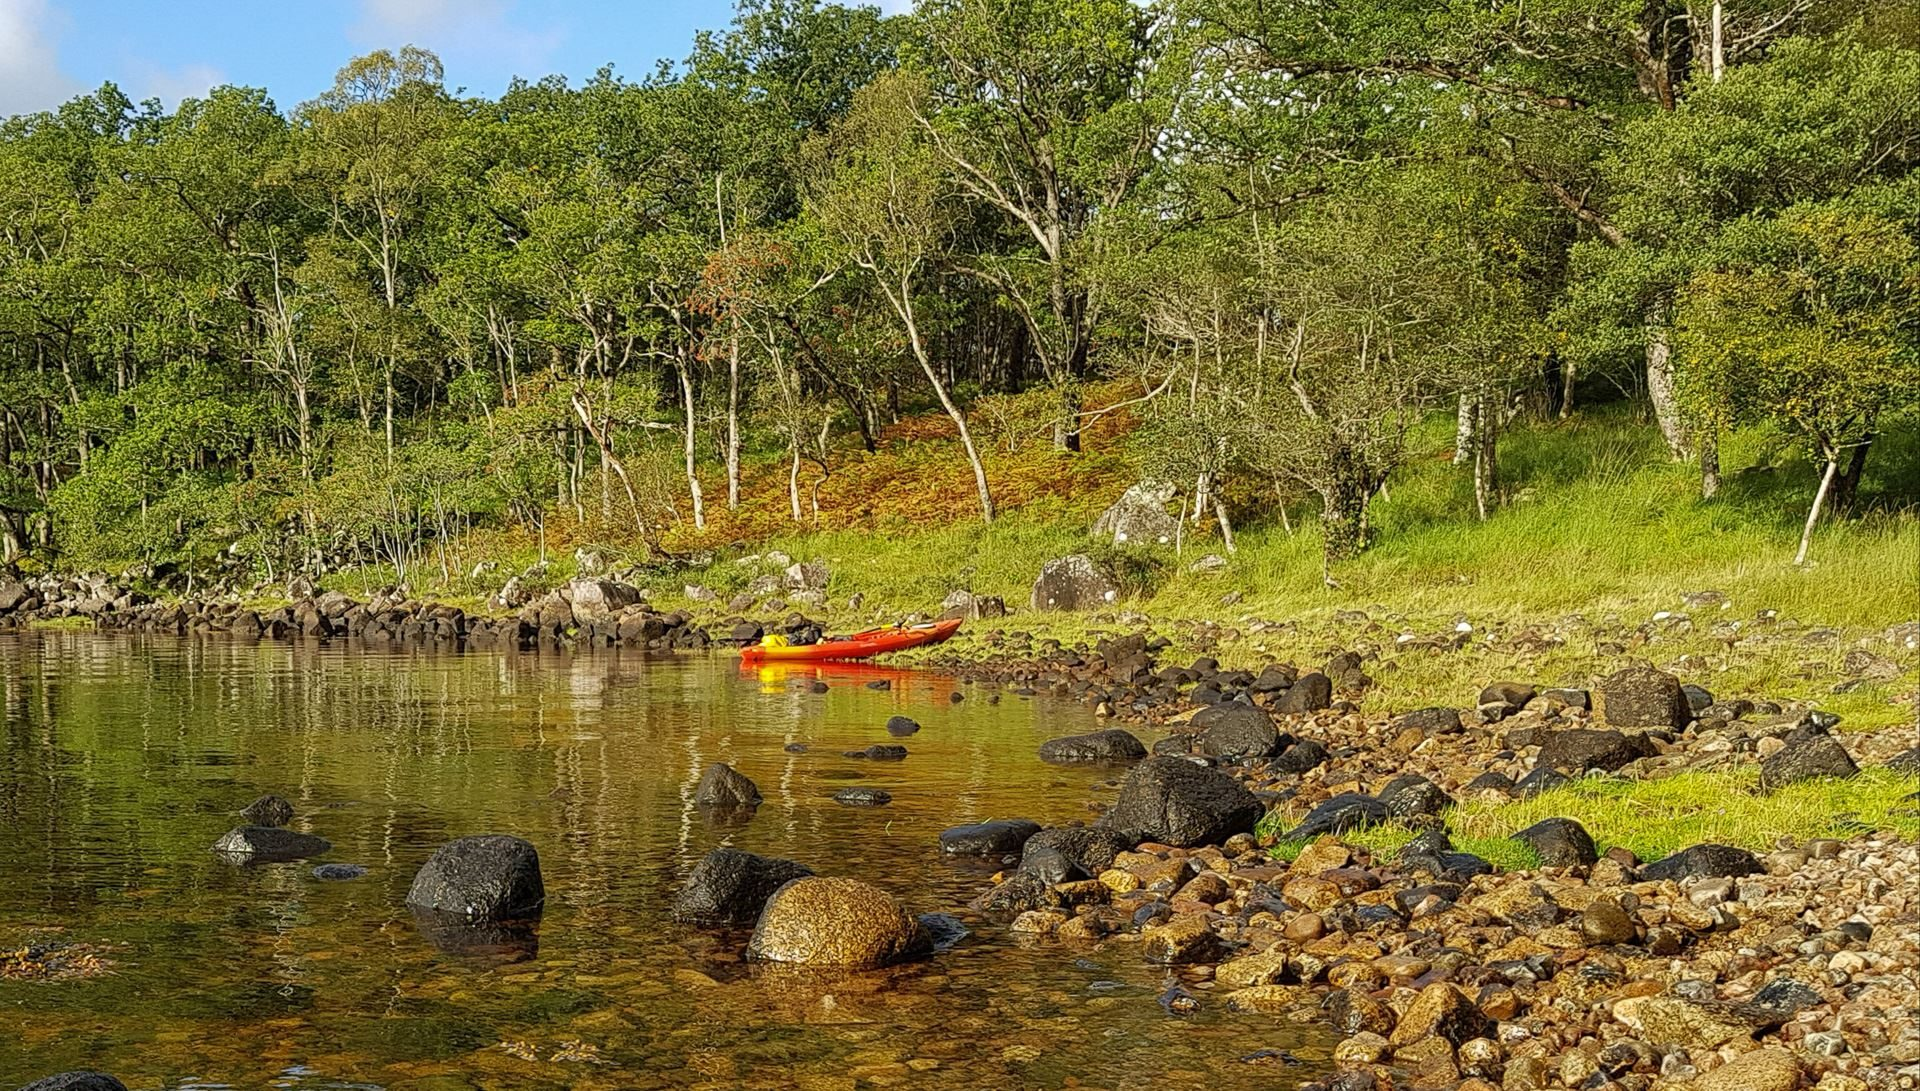 Late summer, or early autumn? Either way, my bright orange and yellow kayak adds additional colour to the scene